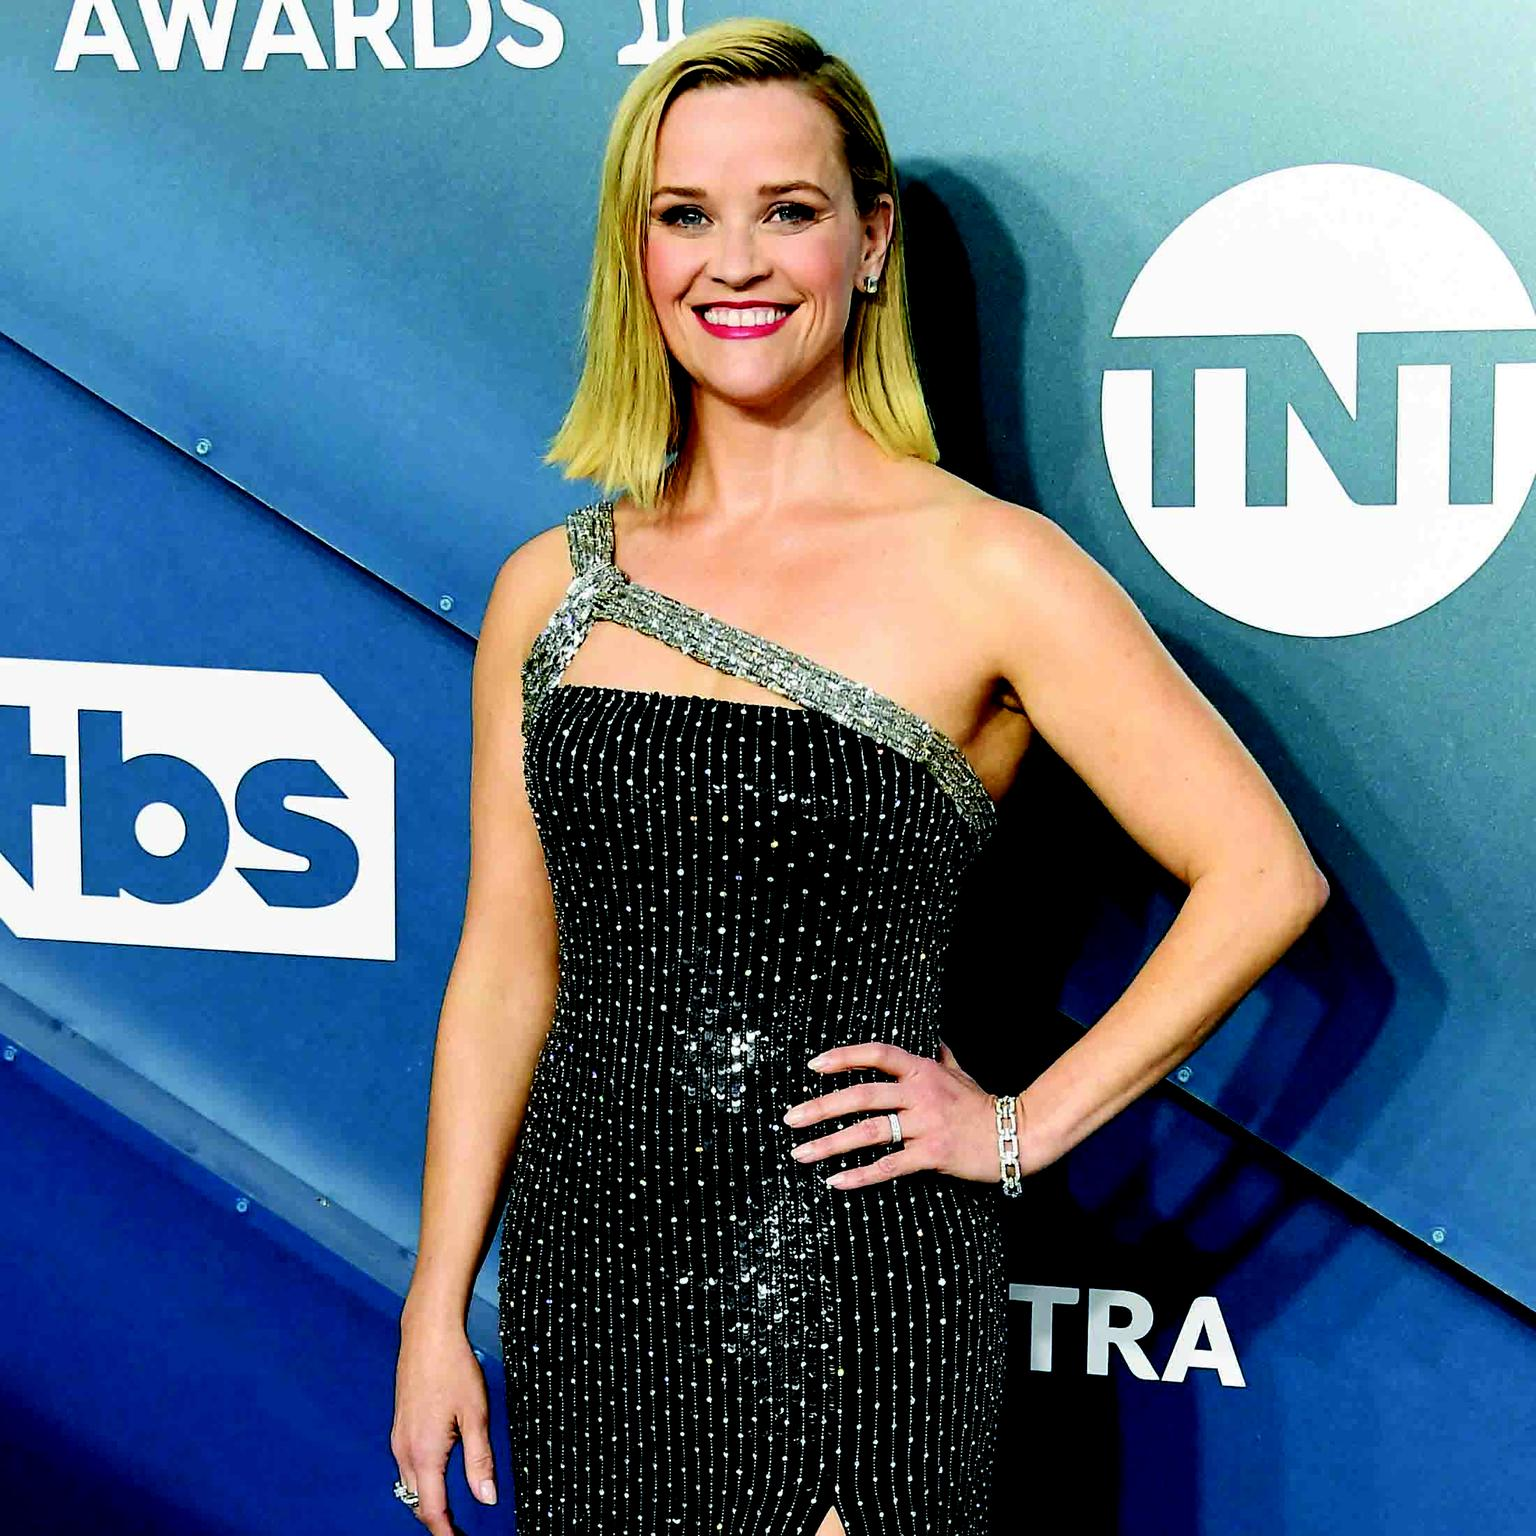 Reese Witherspoon Harry Winston jewels SAG Awards 2020